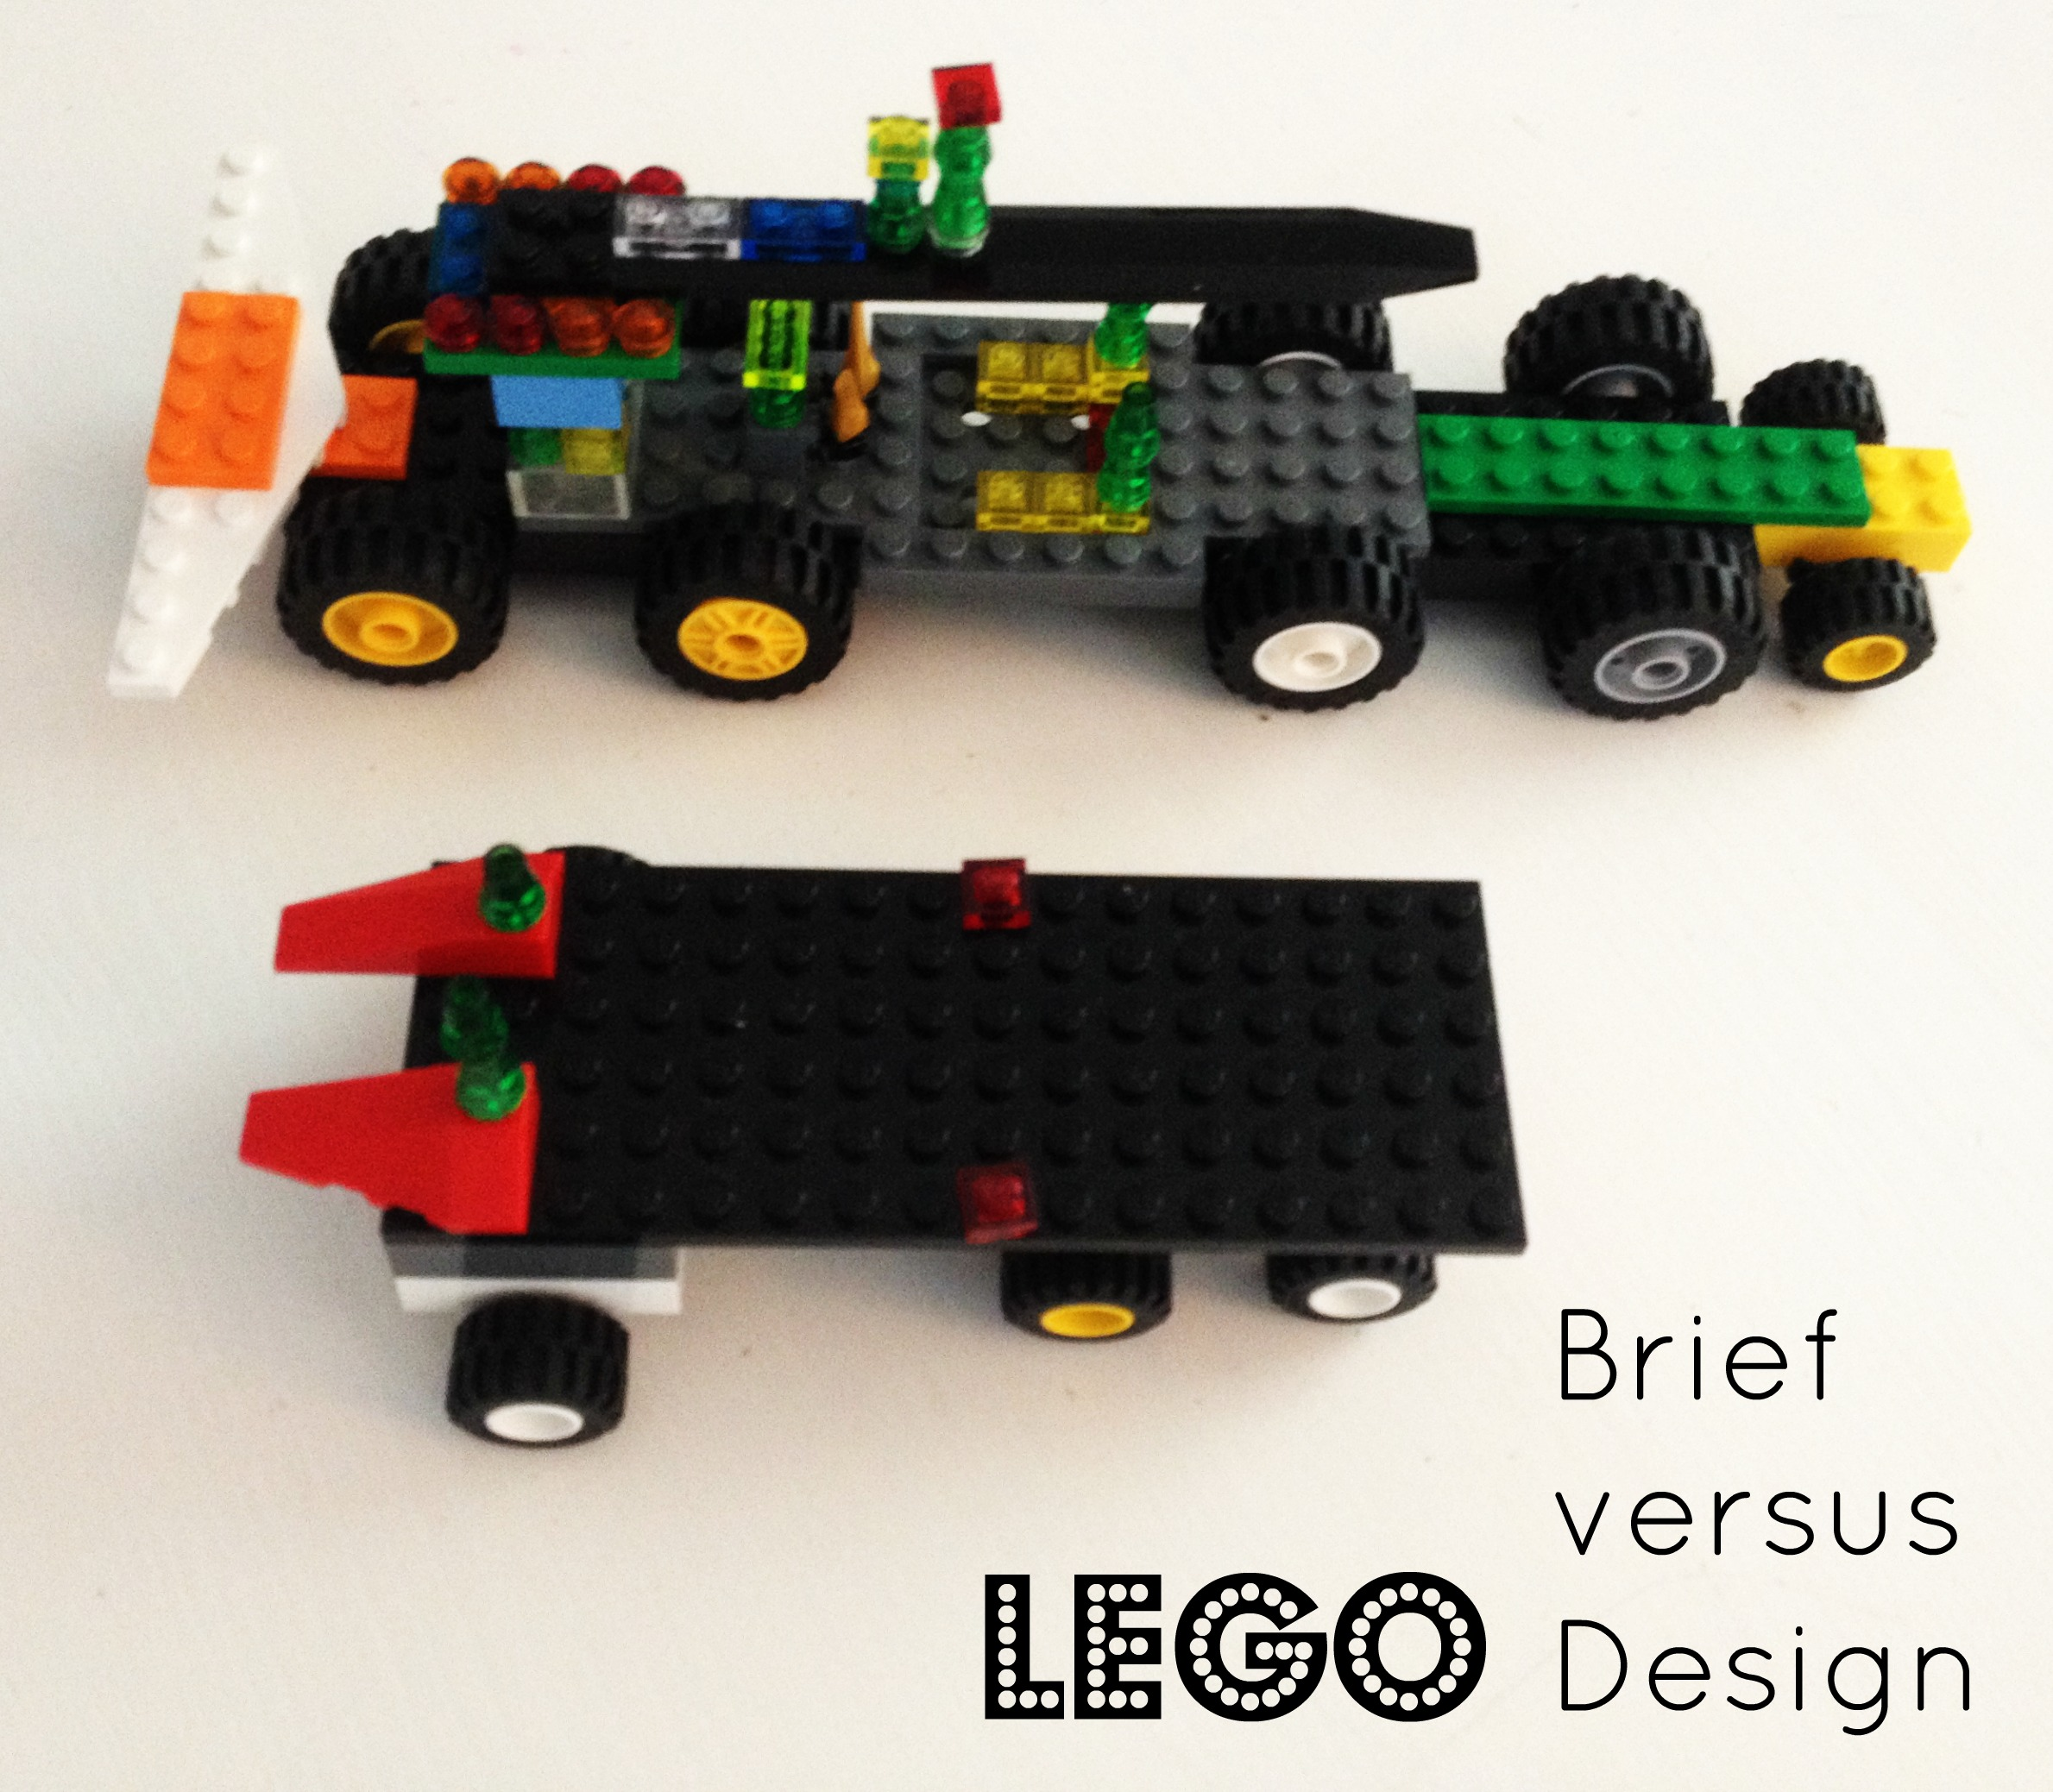 Lego: Brief versus Design